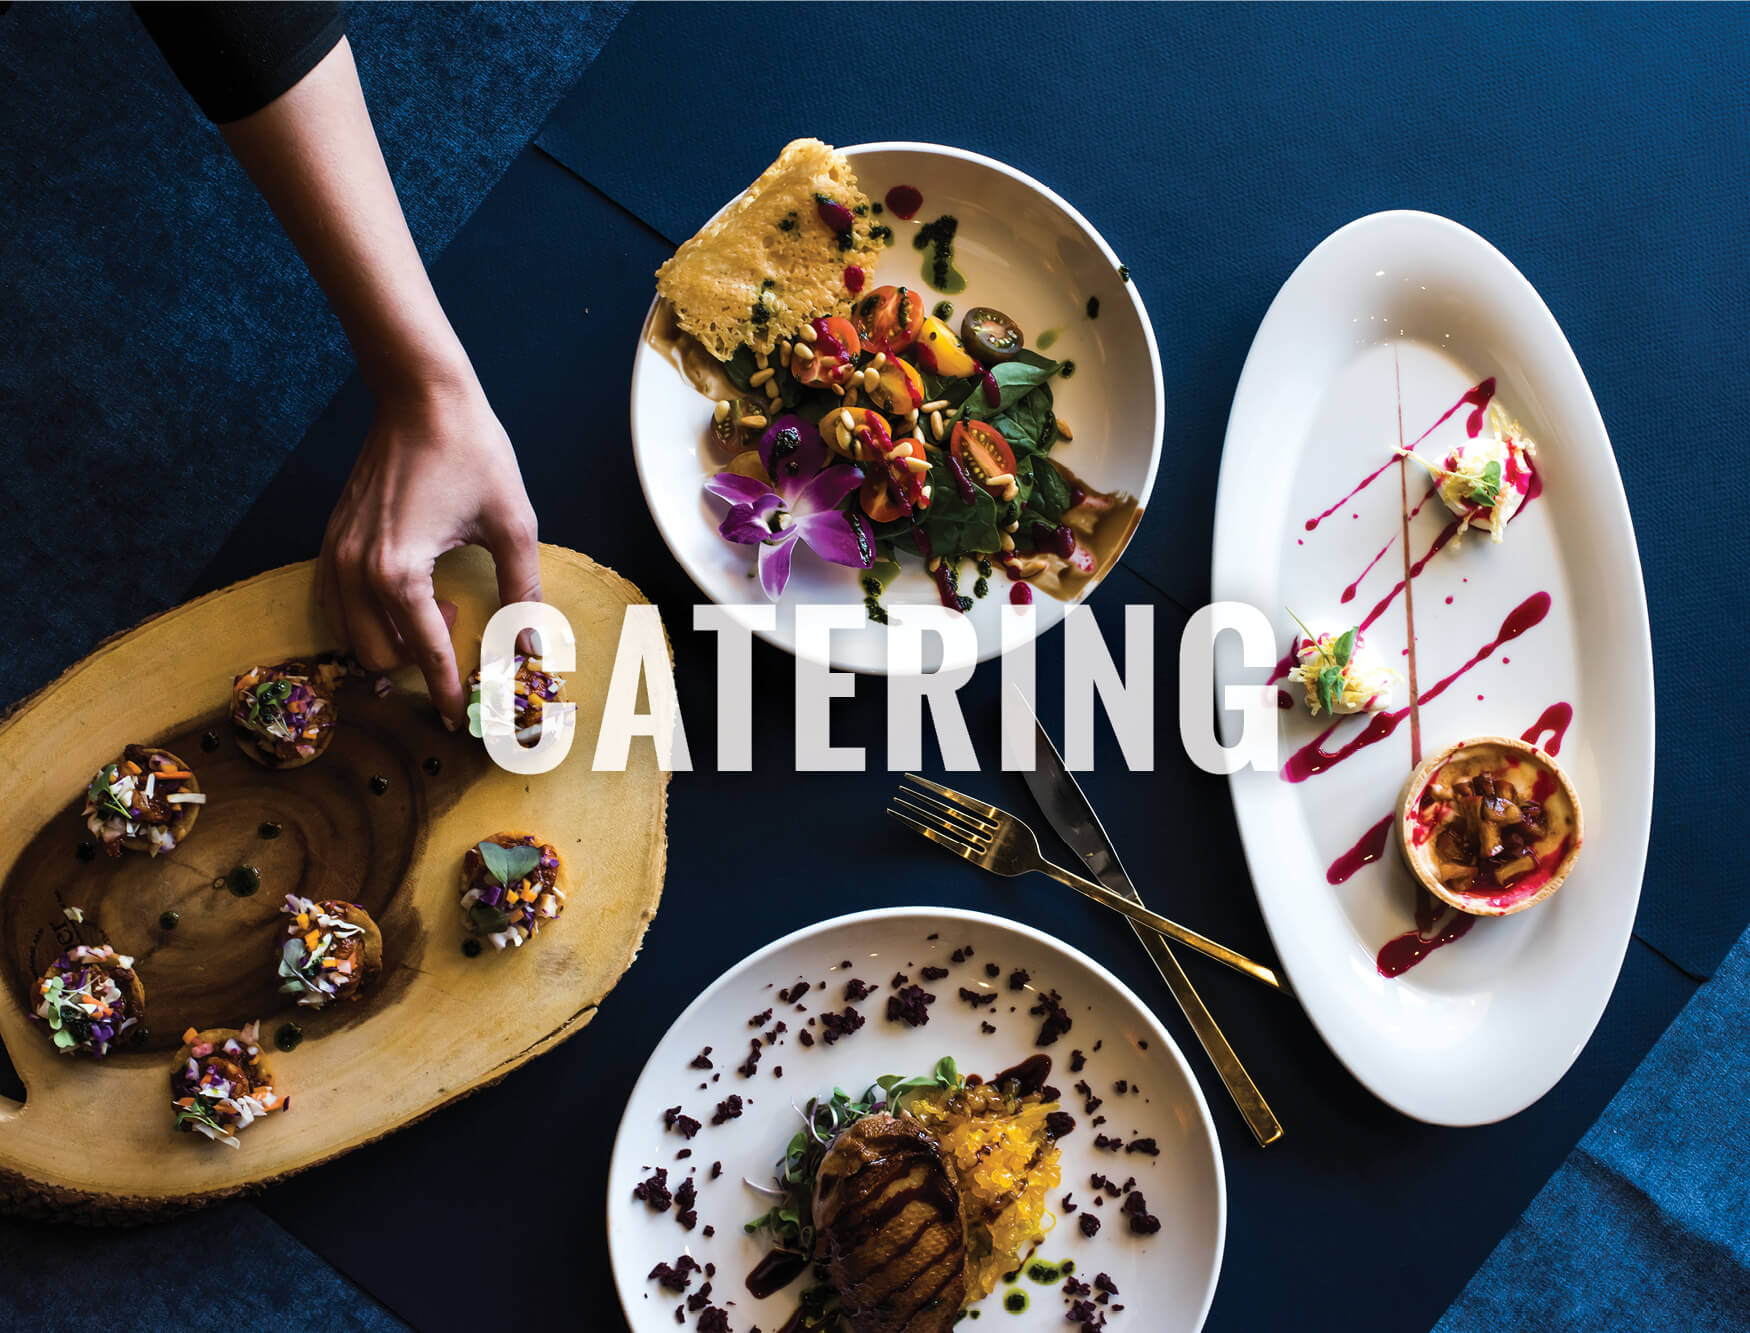 North Texas Caterers